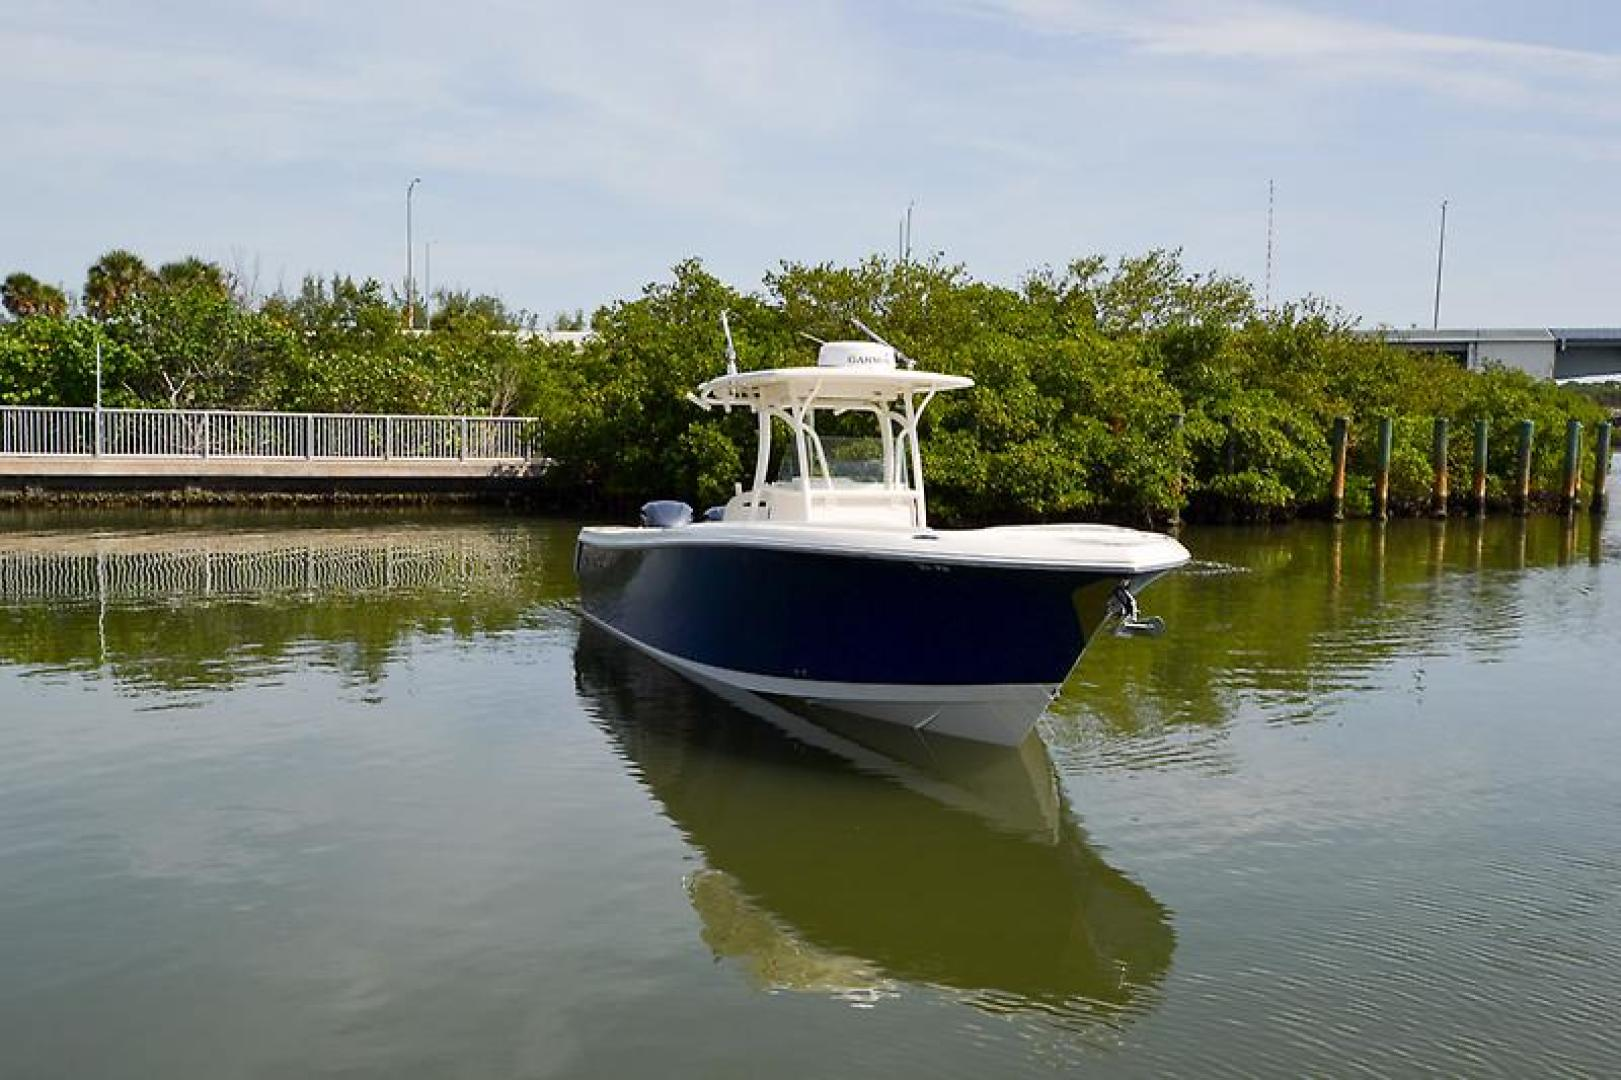 2014 Sailfish 320 cc-10.jpg